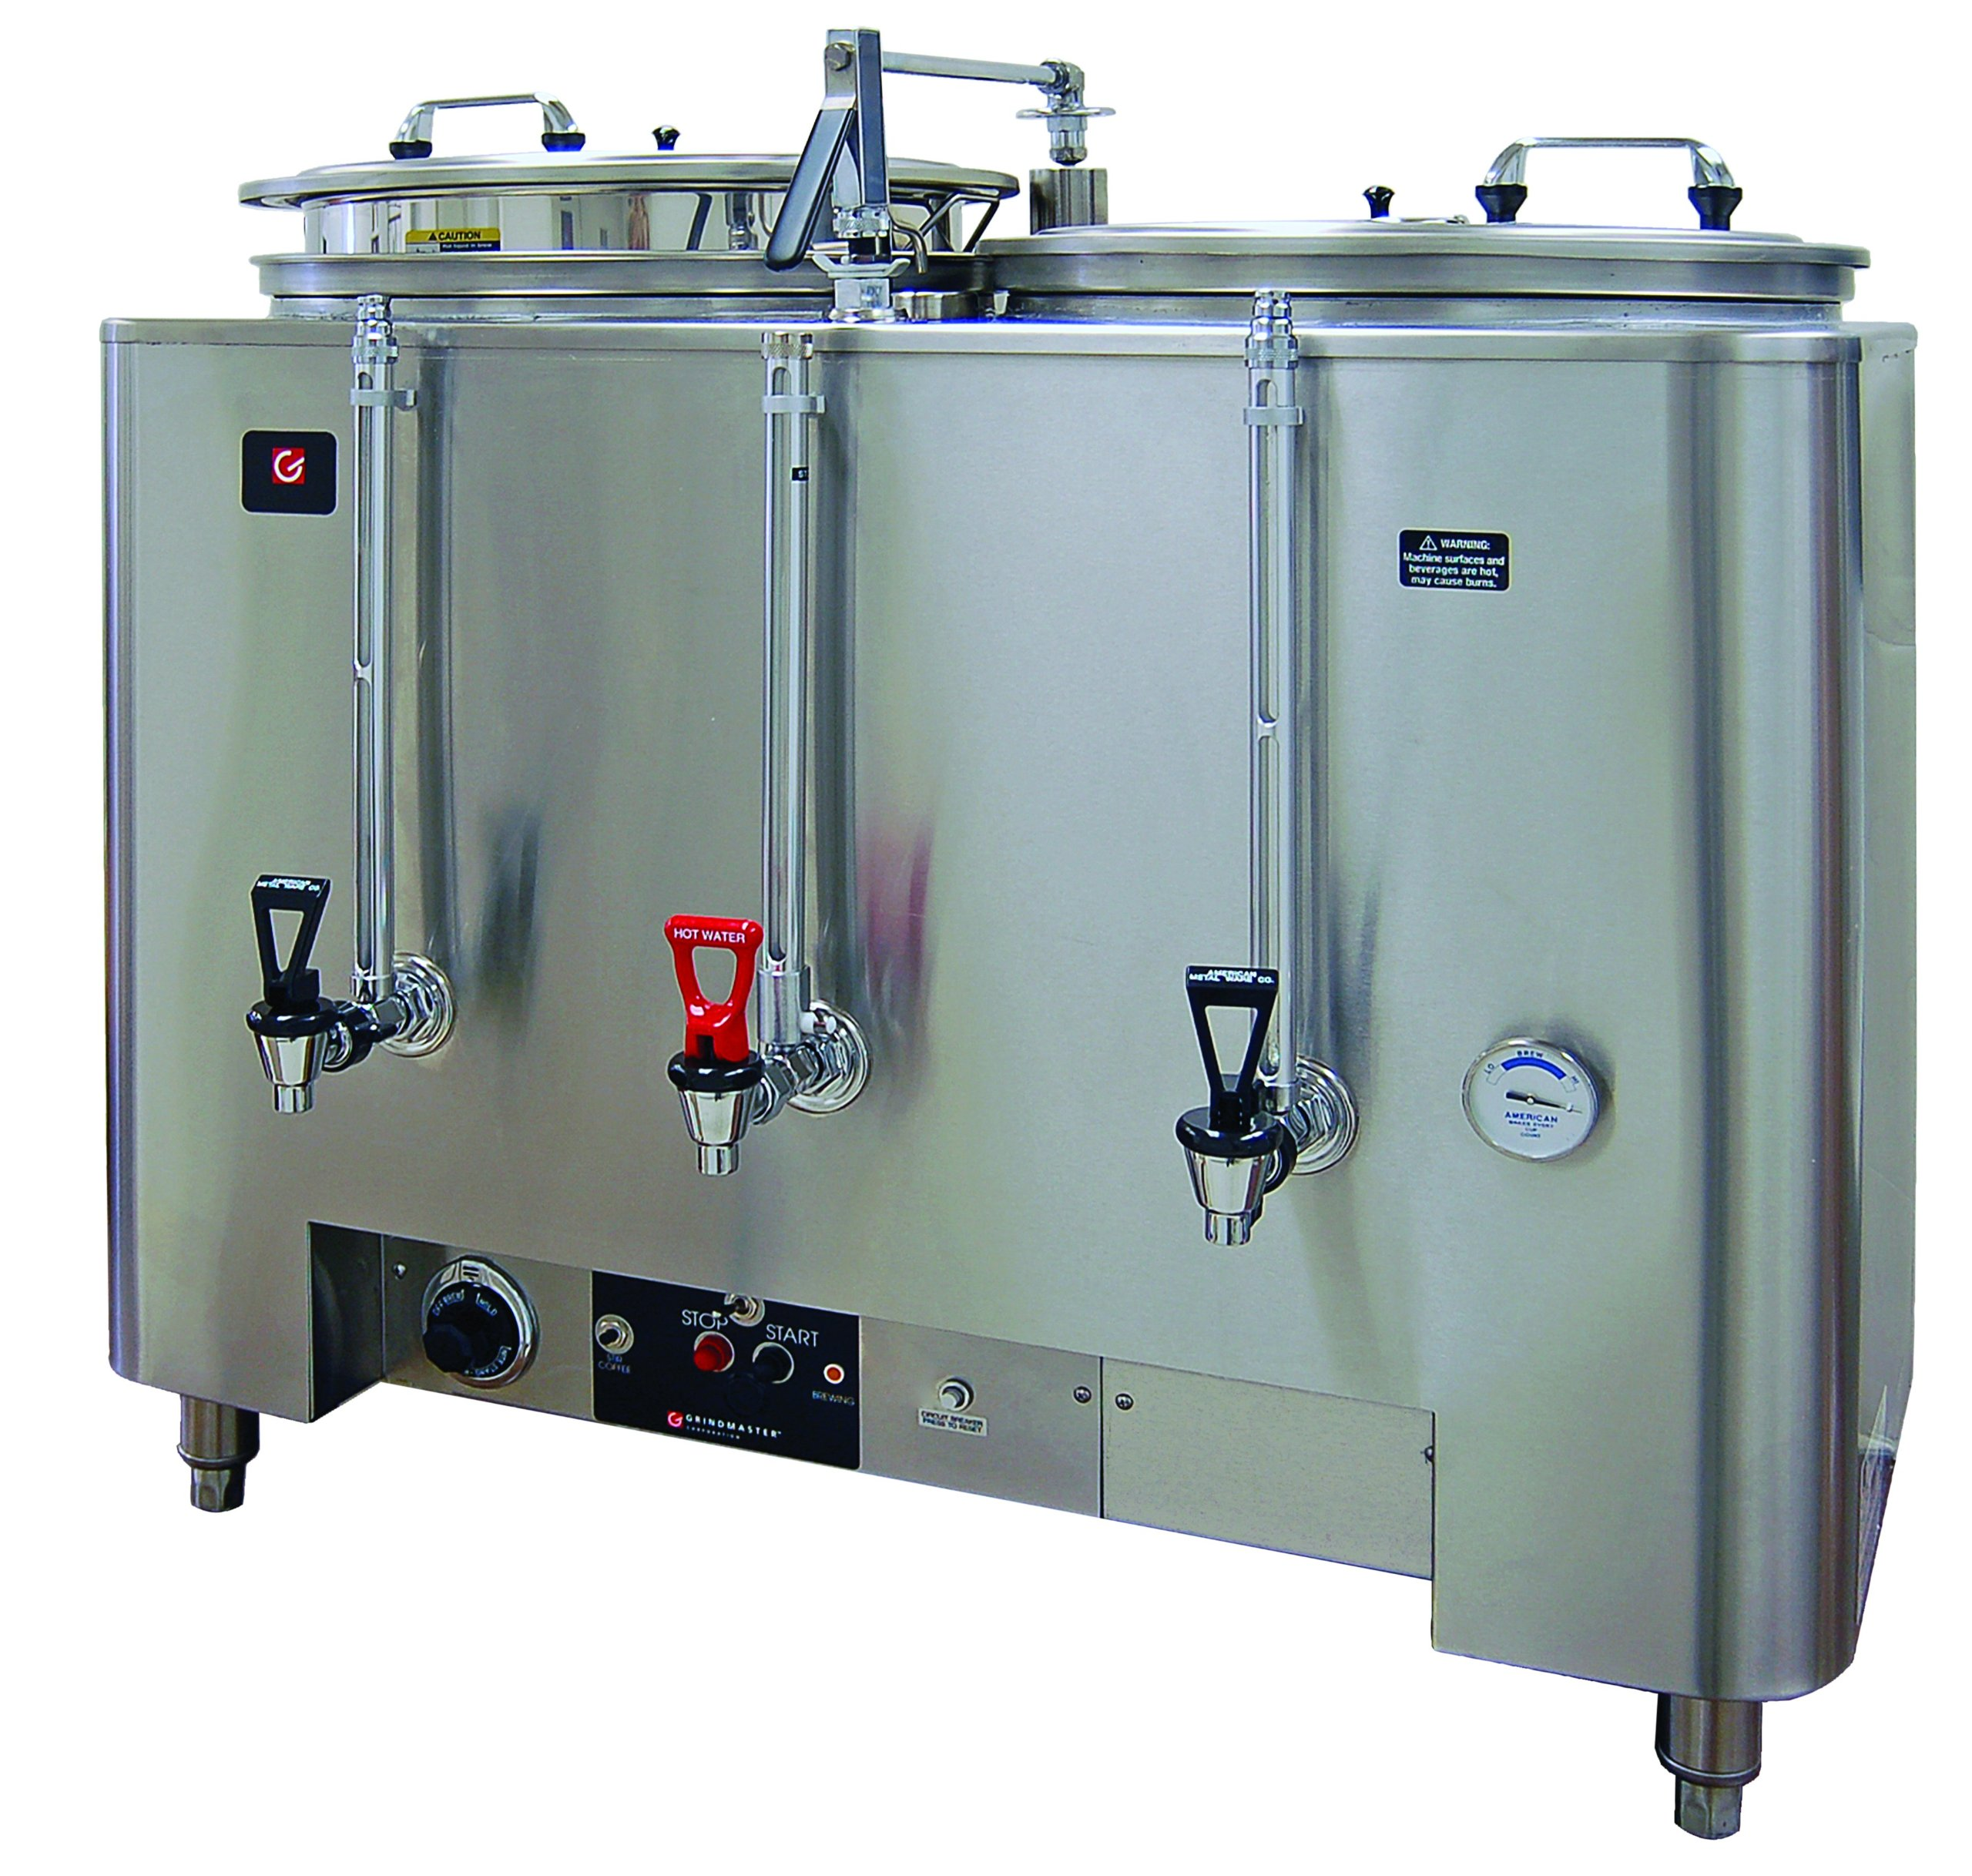 Grindmaster-Cecilware 8103[E] AMW Twin Space 2-Liner Saver Coffee Urn, 3-Gallon by Lee Global Imports and Consulting, Inc. (Image #1)